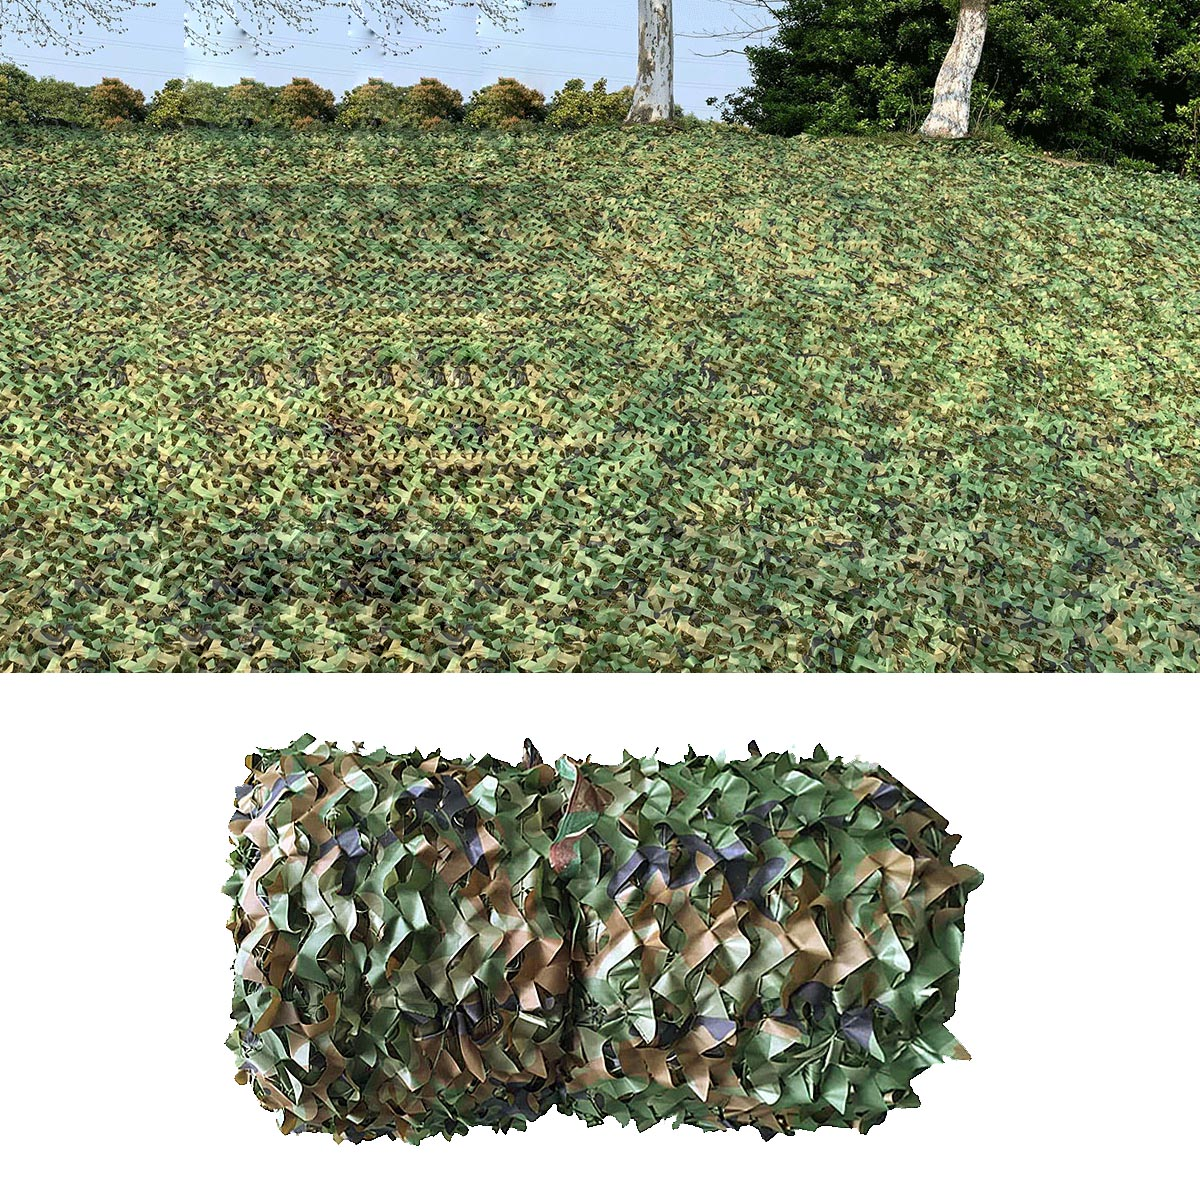 2X5m Jungle Woodland Camouflage Camo Net Netting Camping Military Hunting